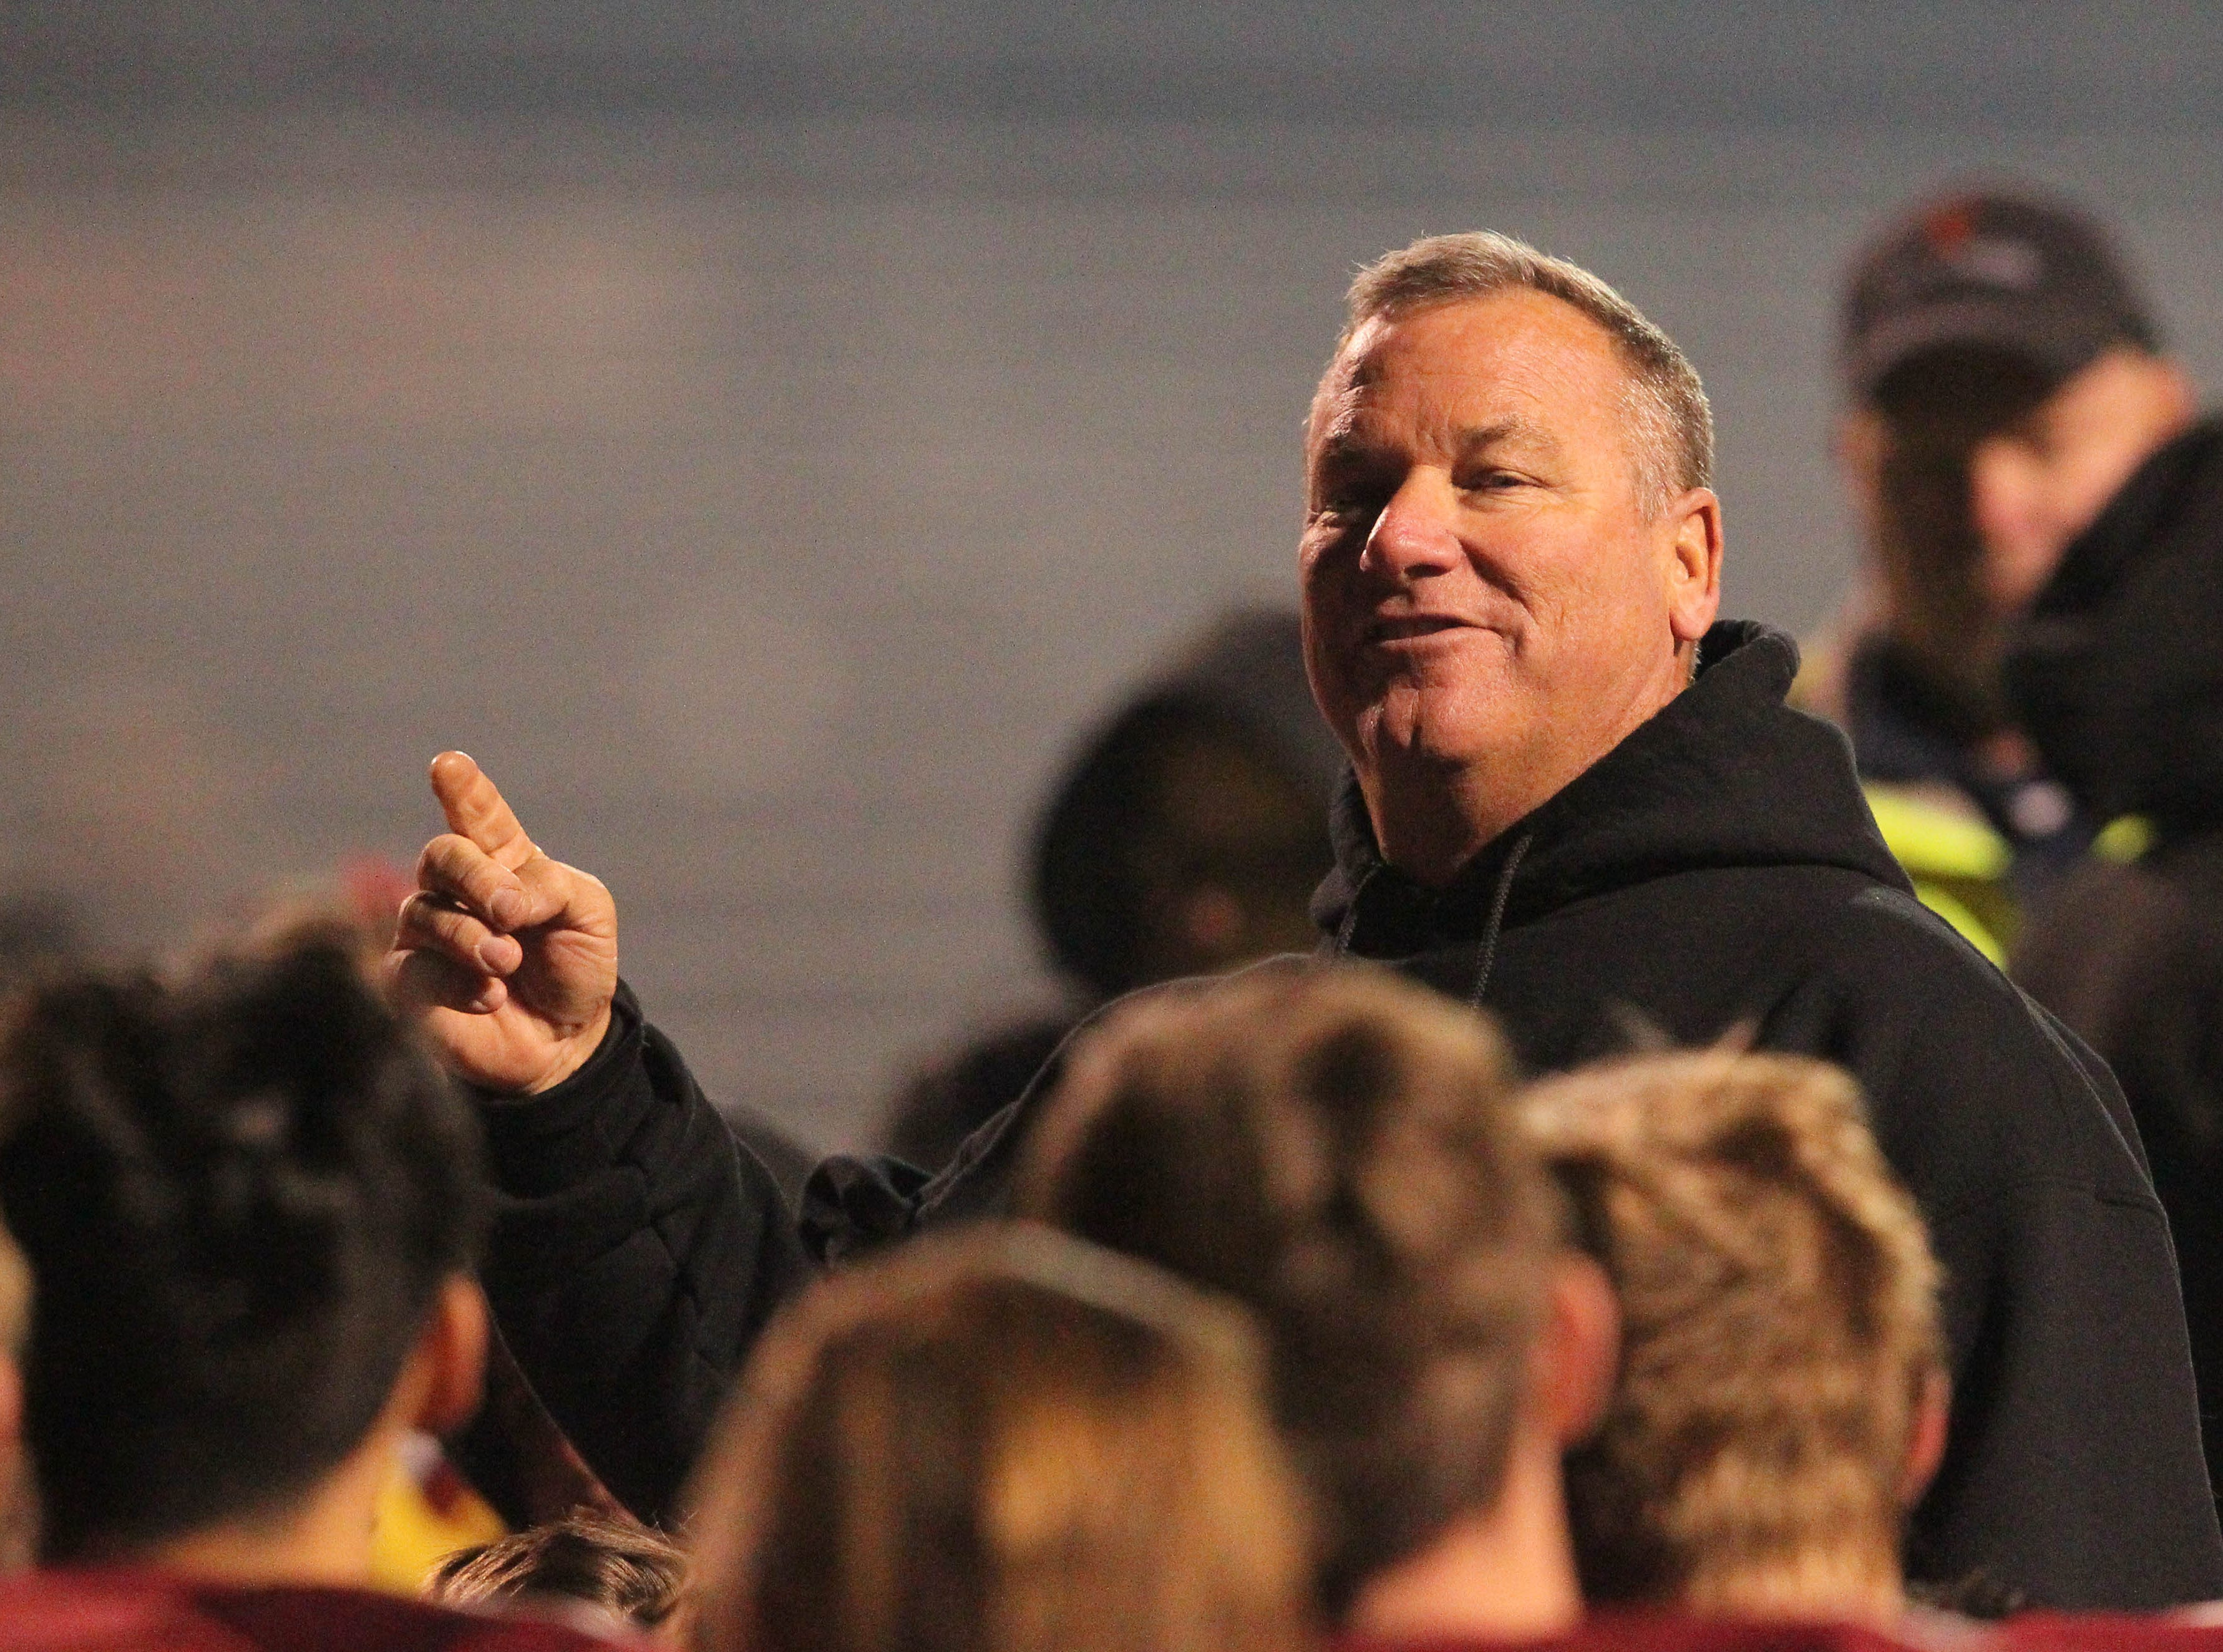 West Valley's head coach, Greg Grandell, talks to players after beating U-Prep, 55 -6, on Friday, Nov. 9.